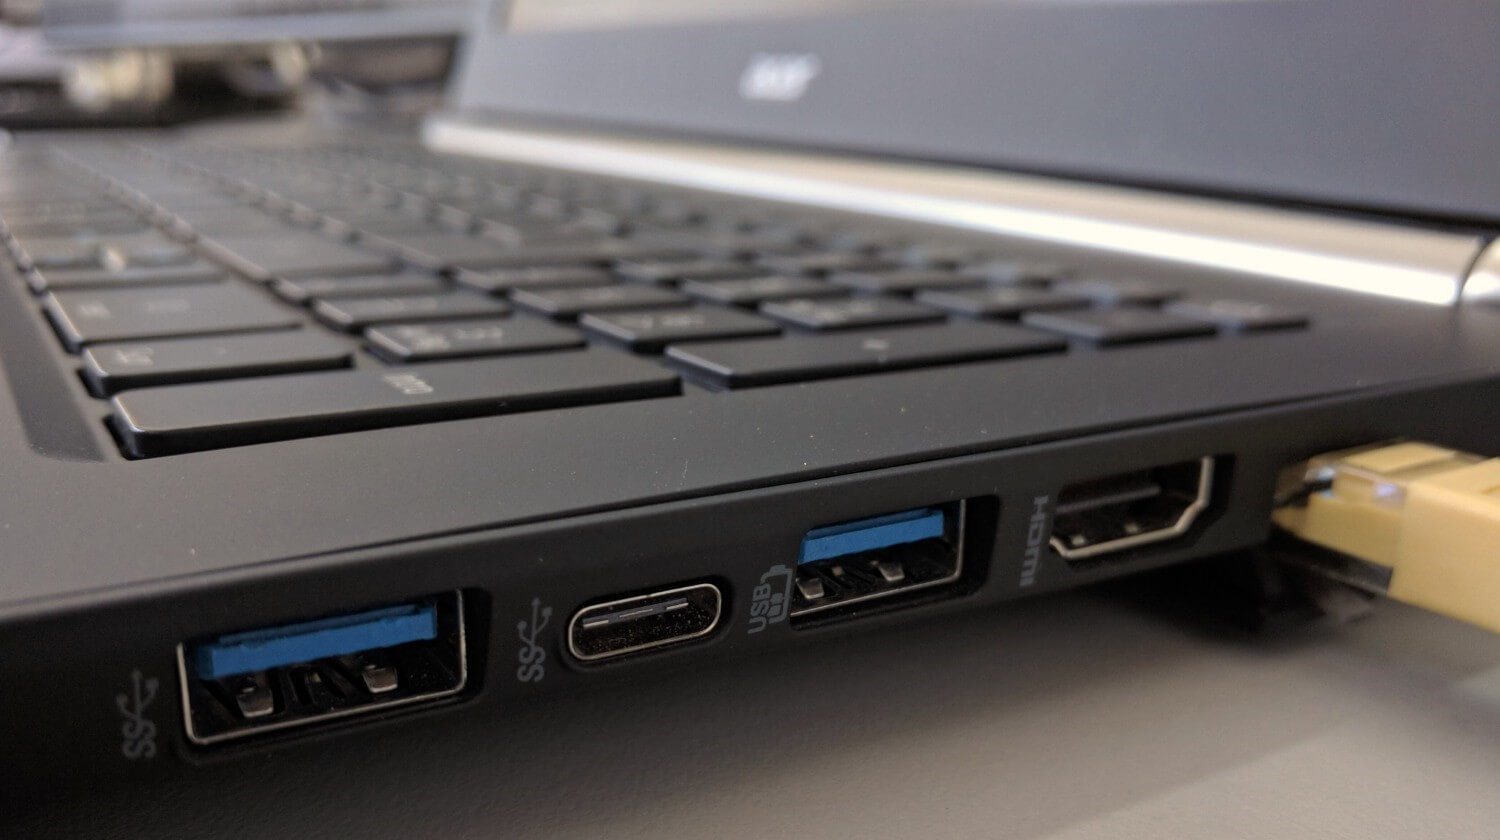 fix device not migrated USB error - Step 1